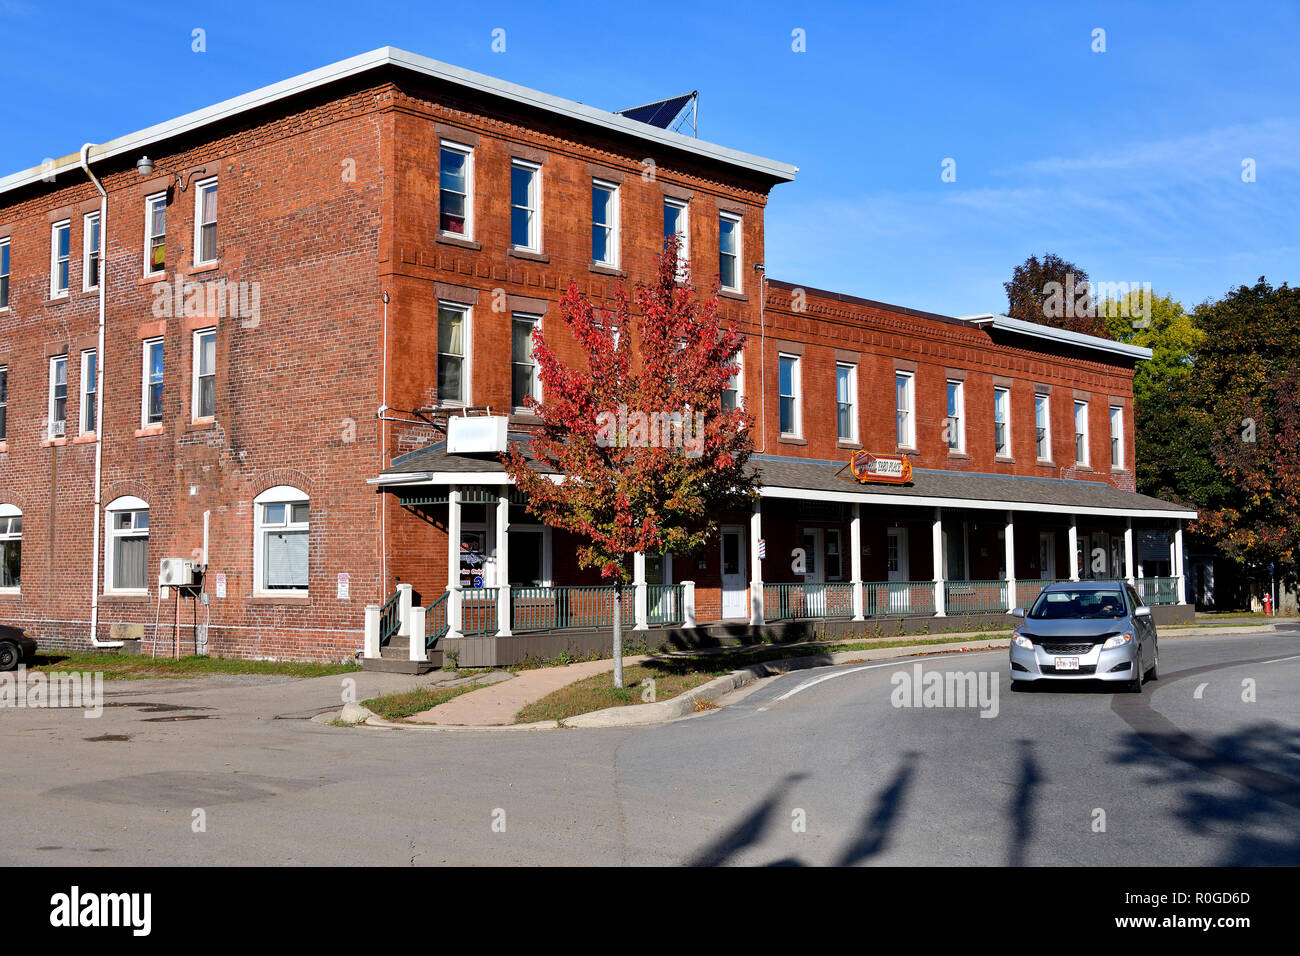 This red brick building is a town icon once known as the Sussex Hotel and its' closeness to the train station made it on of the busiest hotels in the  - Stock Image